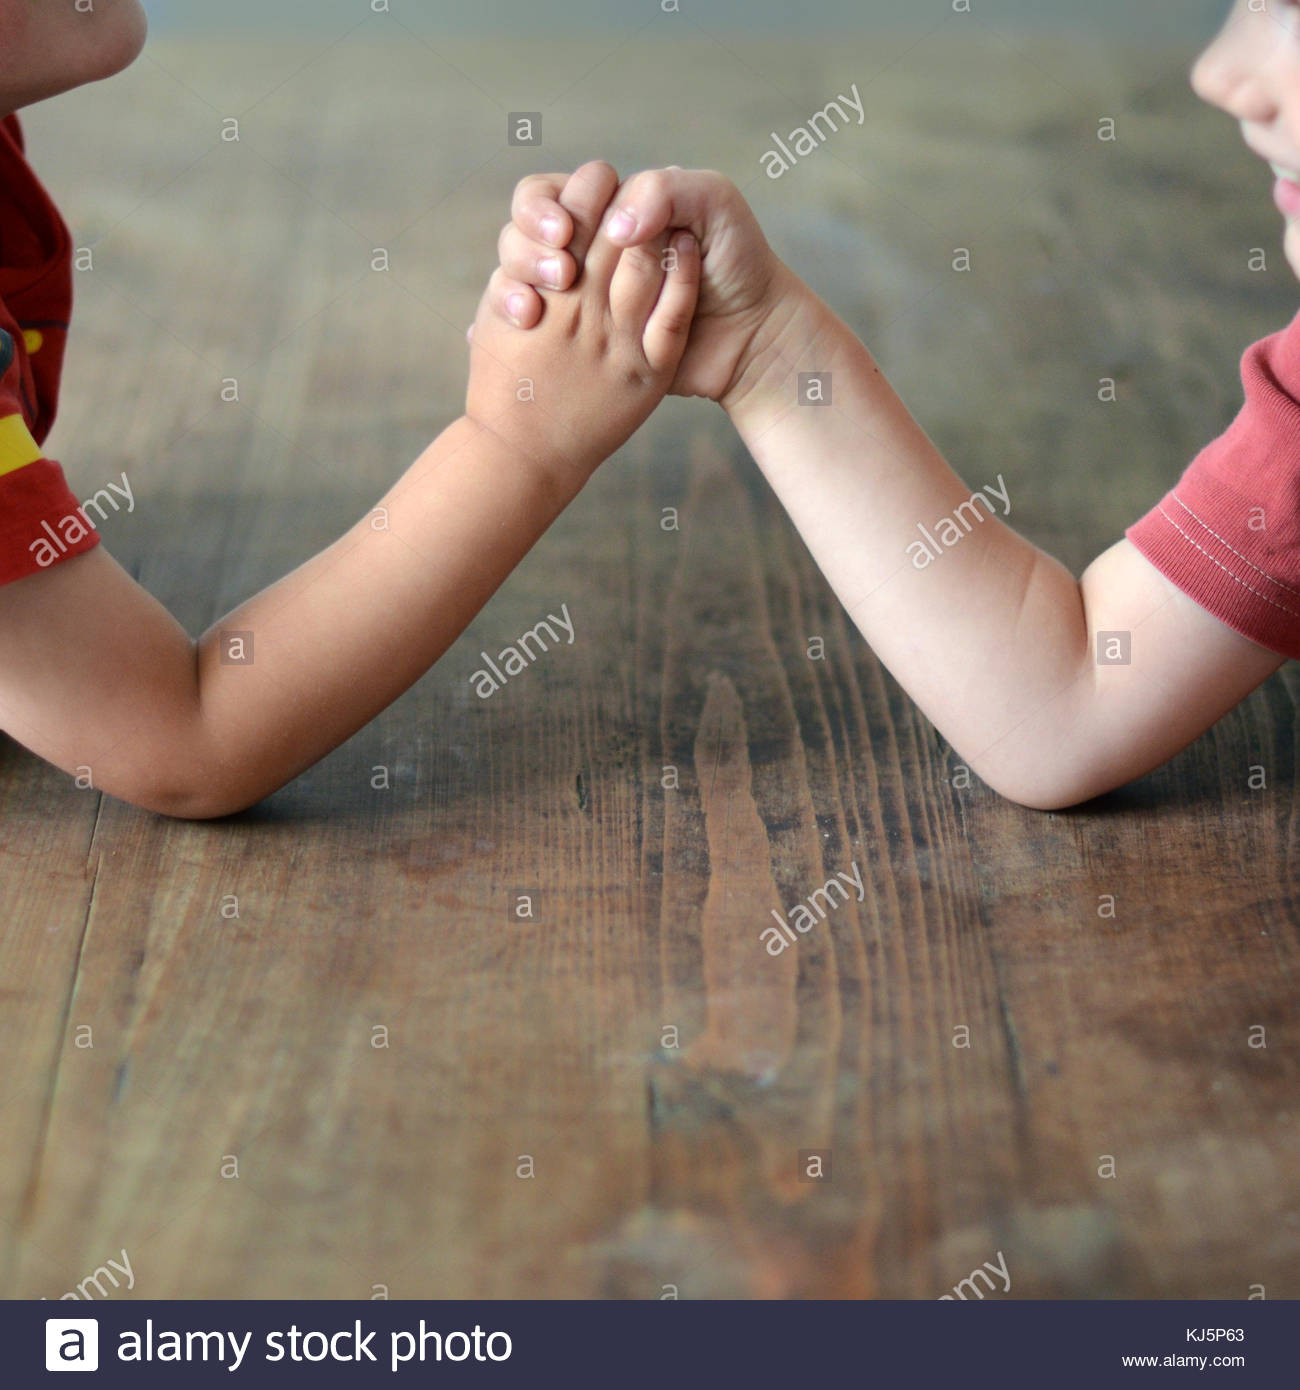 Arm wrestling - Stock Image